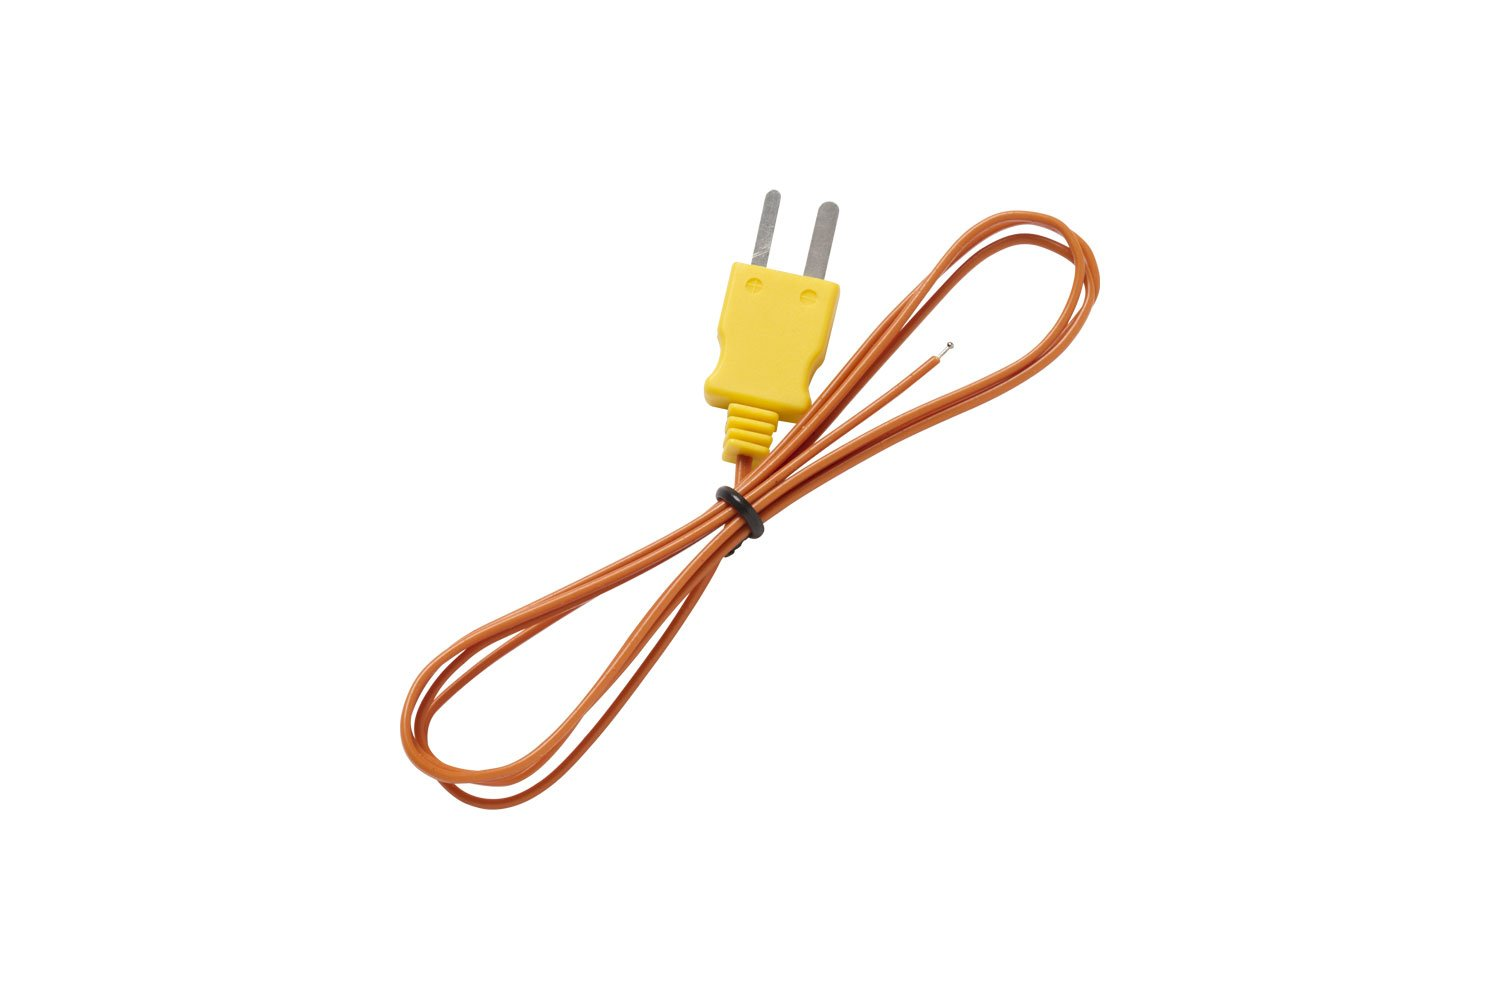 Fluke 80PK-1 Probe Thermocouple Beaded K-Type